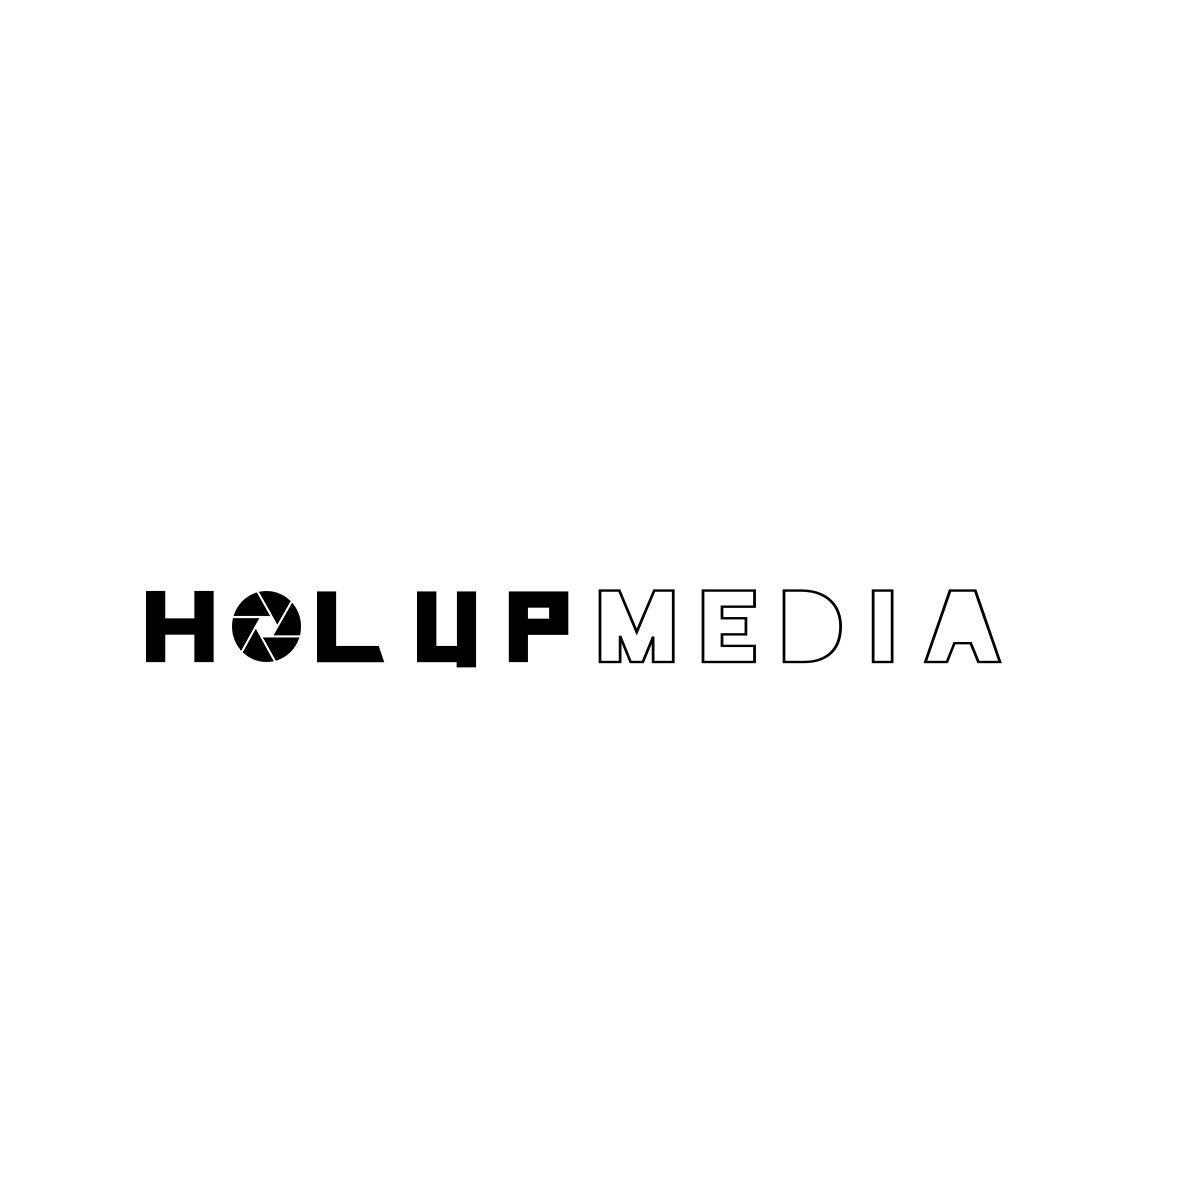 holup media logo profile pic.jpg